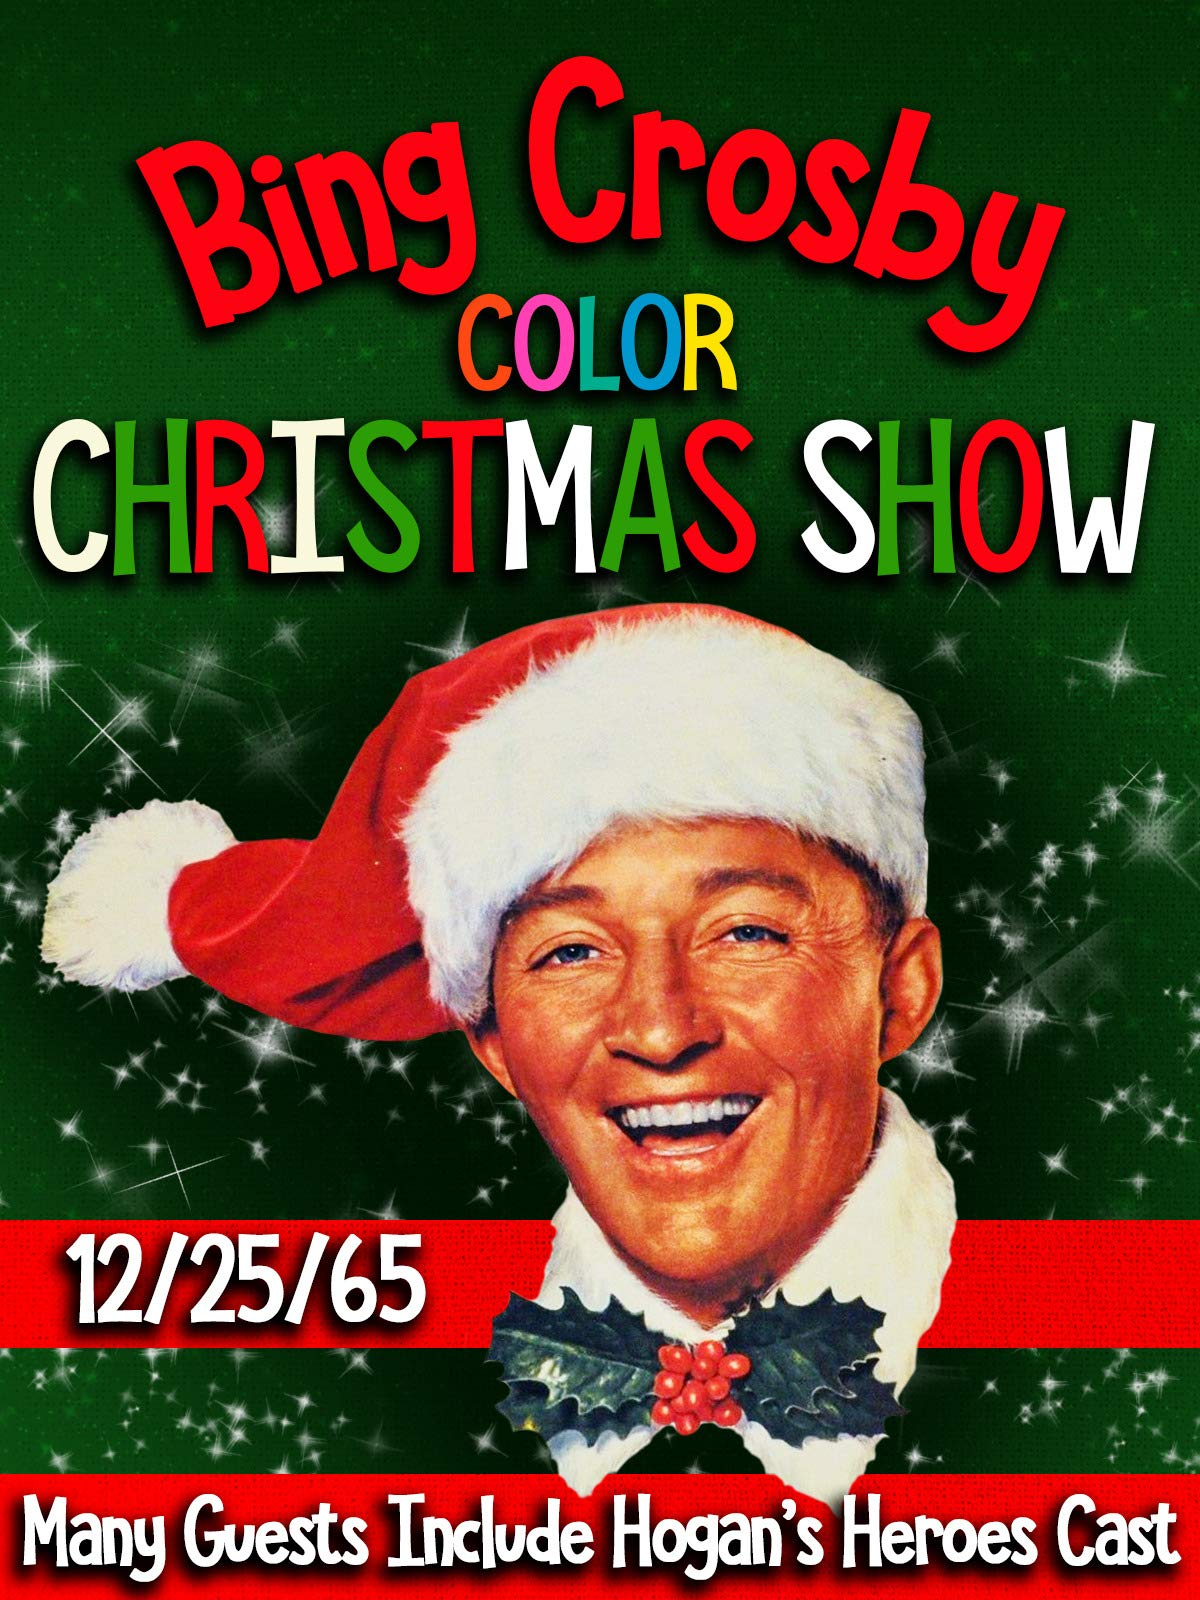 Bing Crosby Color Christmas Show 12/25/65 - Many Guests Including Hogan's Heroes Cast